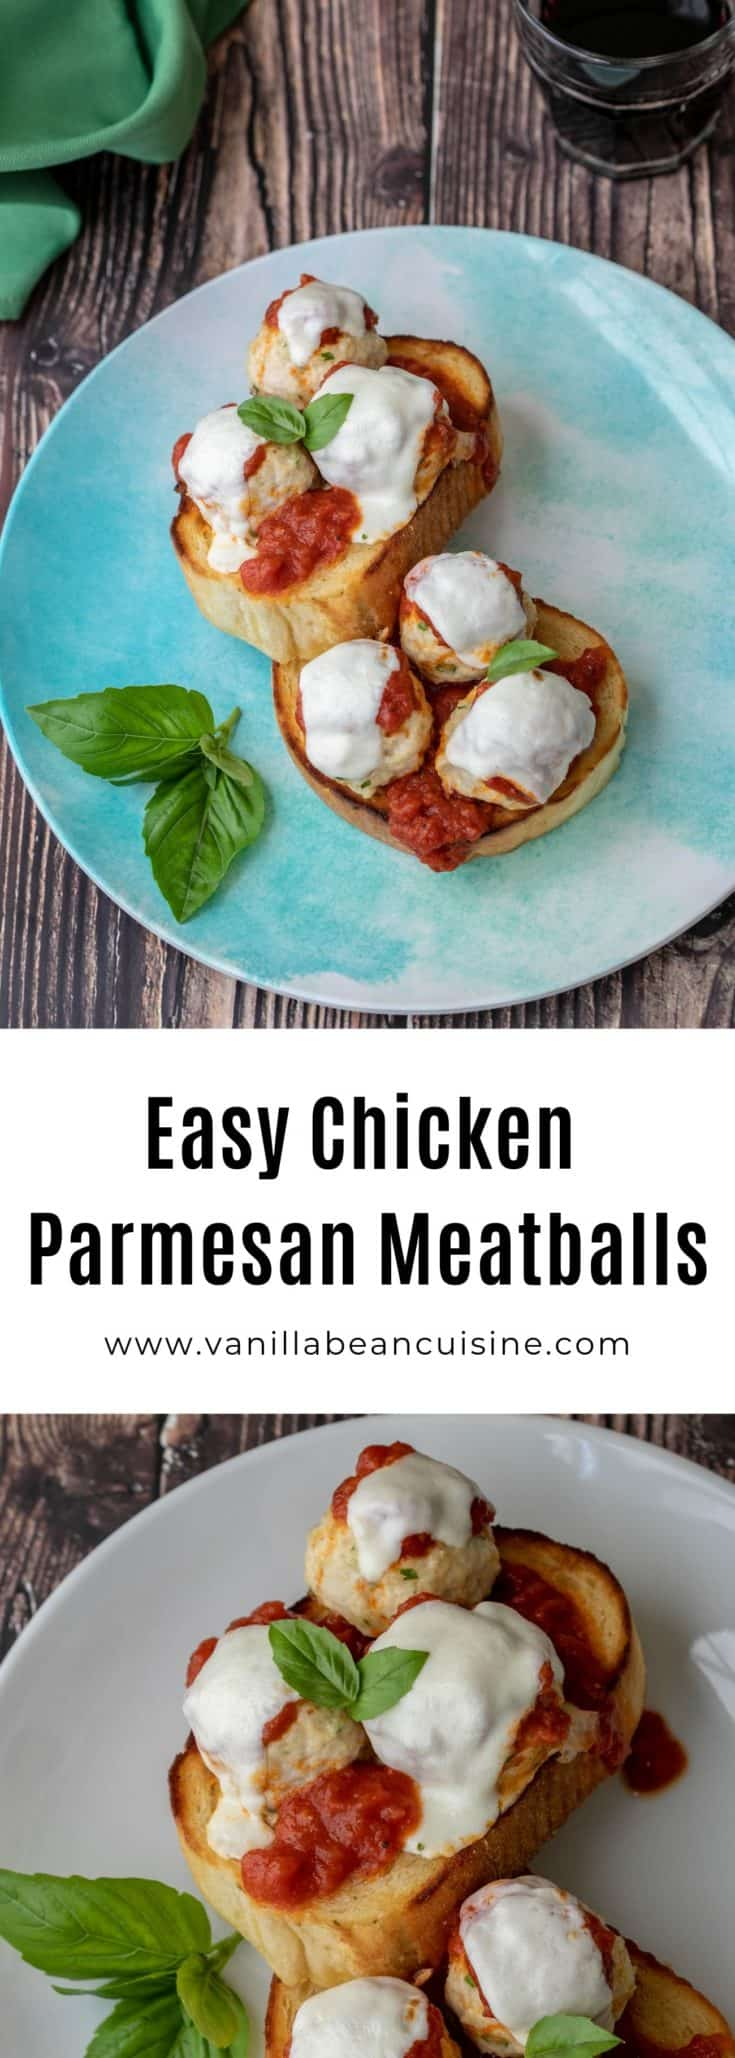 Baked and then broiled with marinara sauce and melty mozzarella cheese these chicken parmesan meatballs are guaranteed to make your people happy. Great on pasta, garlic bread, or go low-carb and serve with a big green salad. #chickenparm #30minmeals #healthyrecipes #vanillabeancuisine #chicken #meatballs #chickenparmesanmeatballs